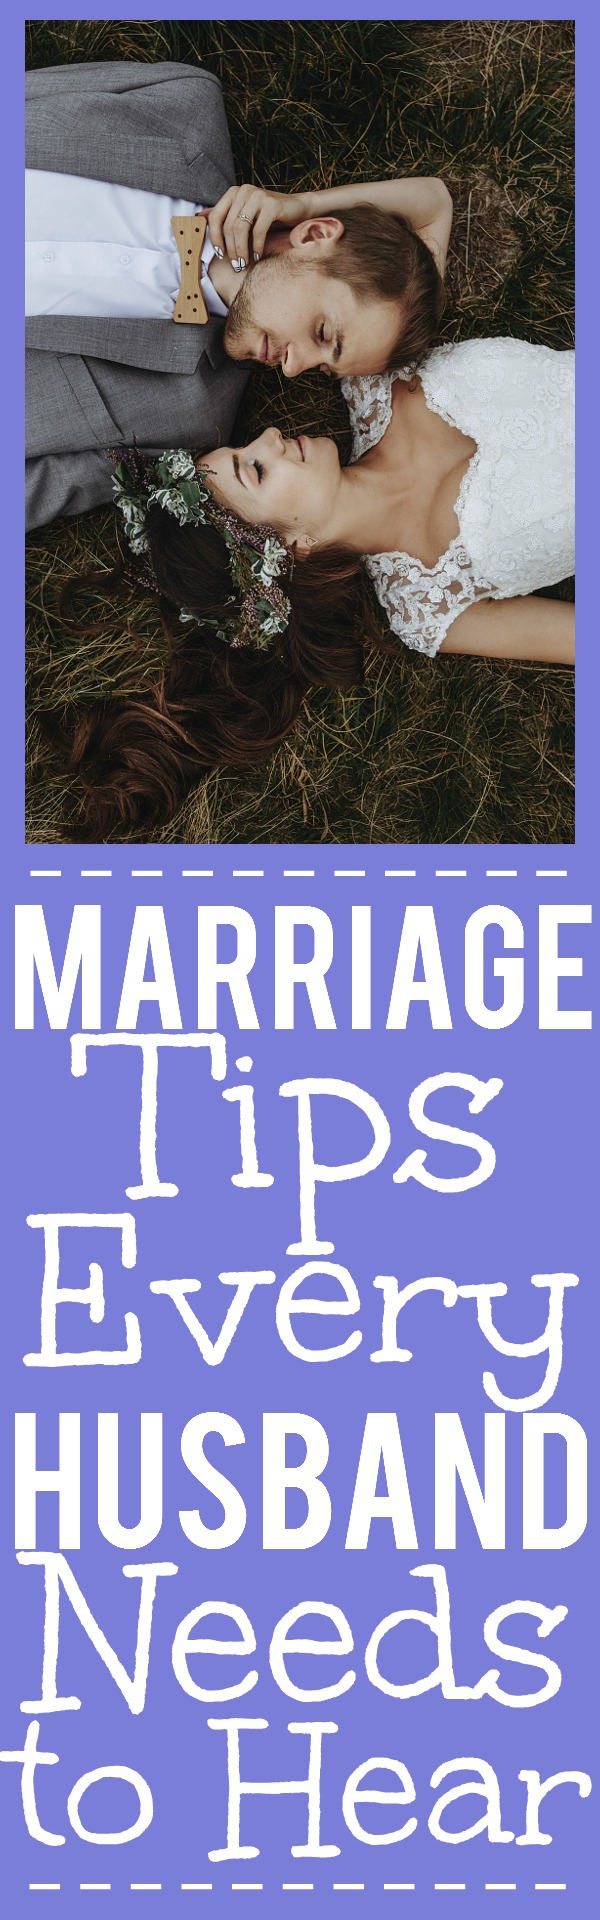 Marriage Tips Every Husband Needs to Hear - Marriage can be hard.  But with love, respect, and hard work, you can have a wonderful, happy marriage. Get started with these 7 Marriage Tips Every Husband Needs to Hear.